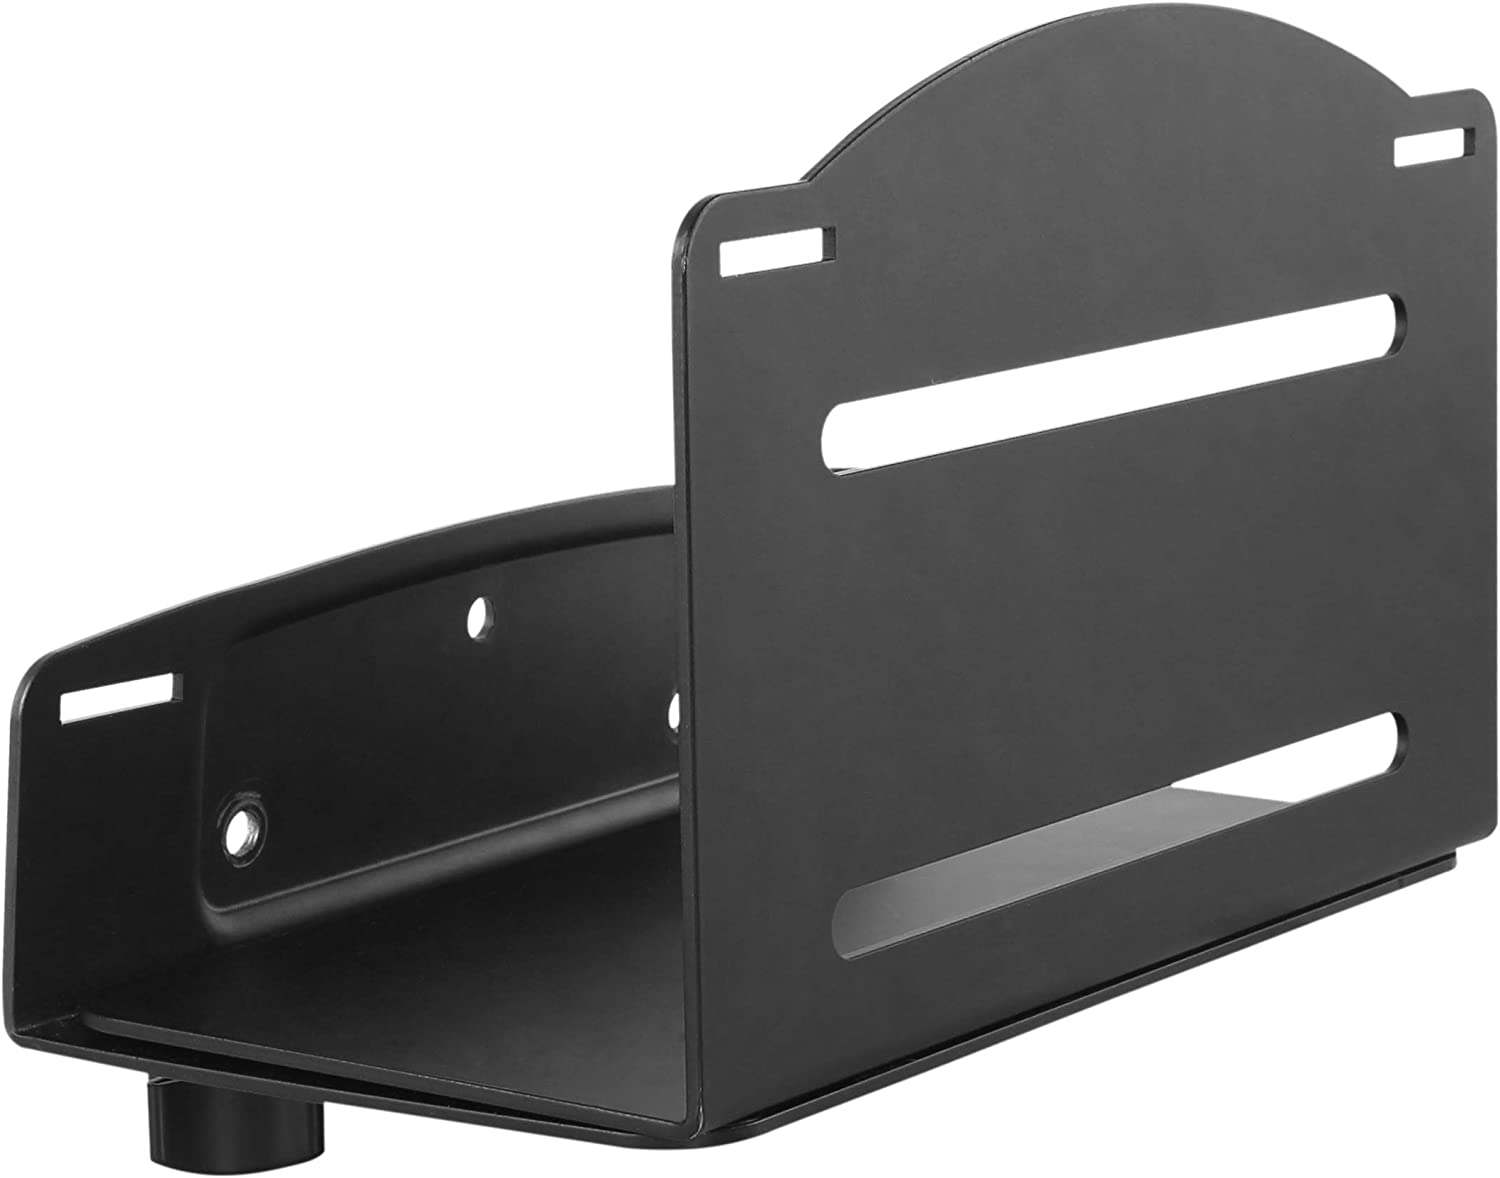 HumanCentric Computer Tower Wall Mount | Adjustable PC Mounting Bracket for Most CPU or Computer Cases